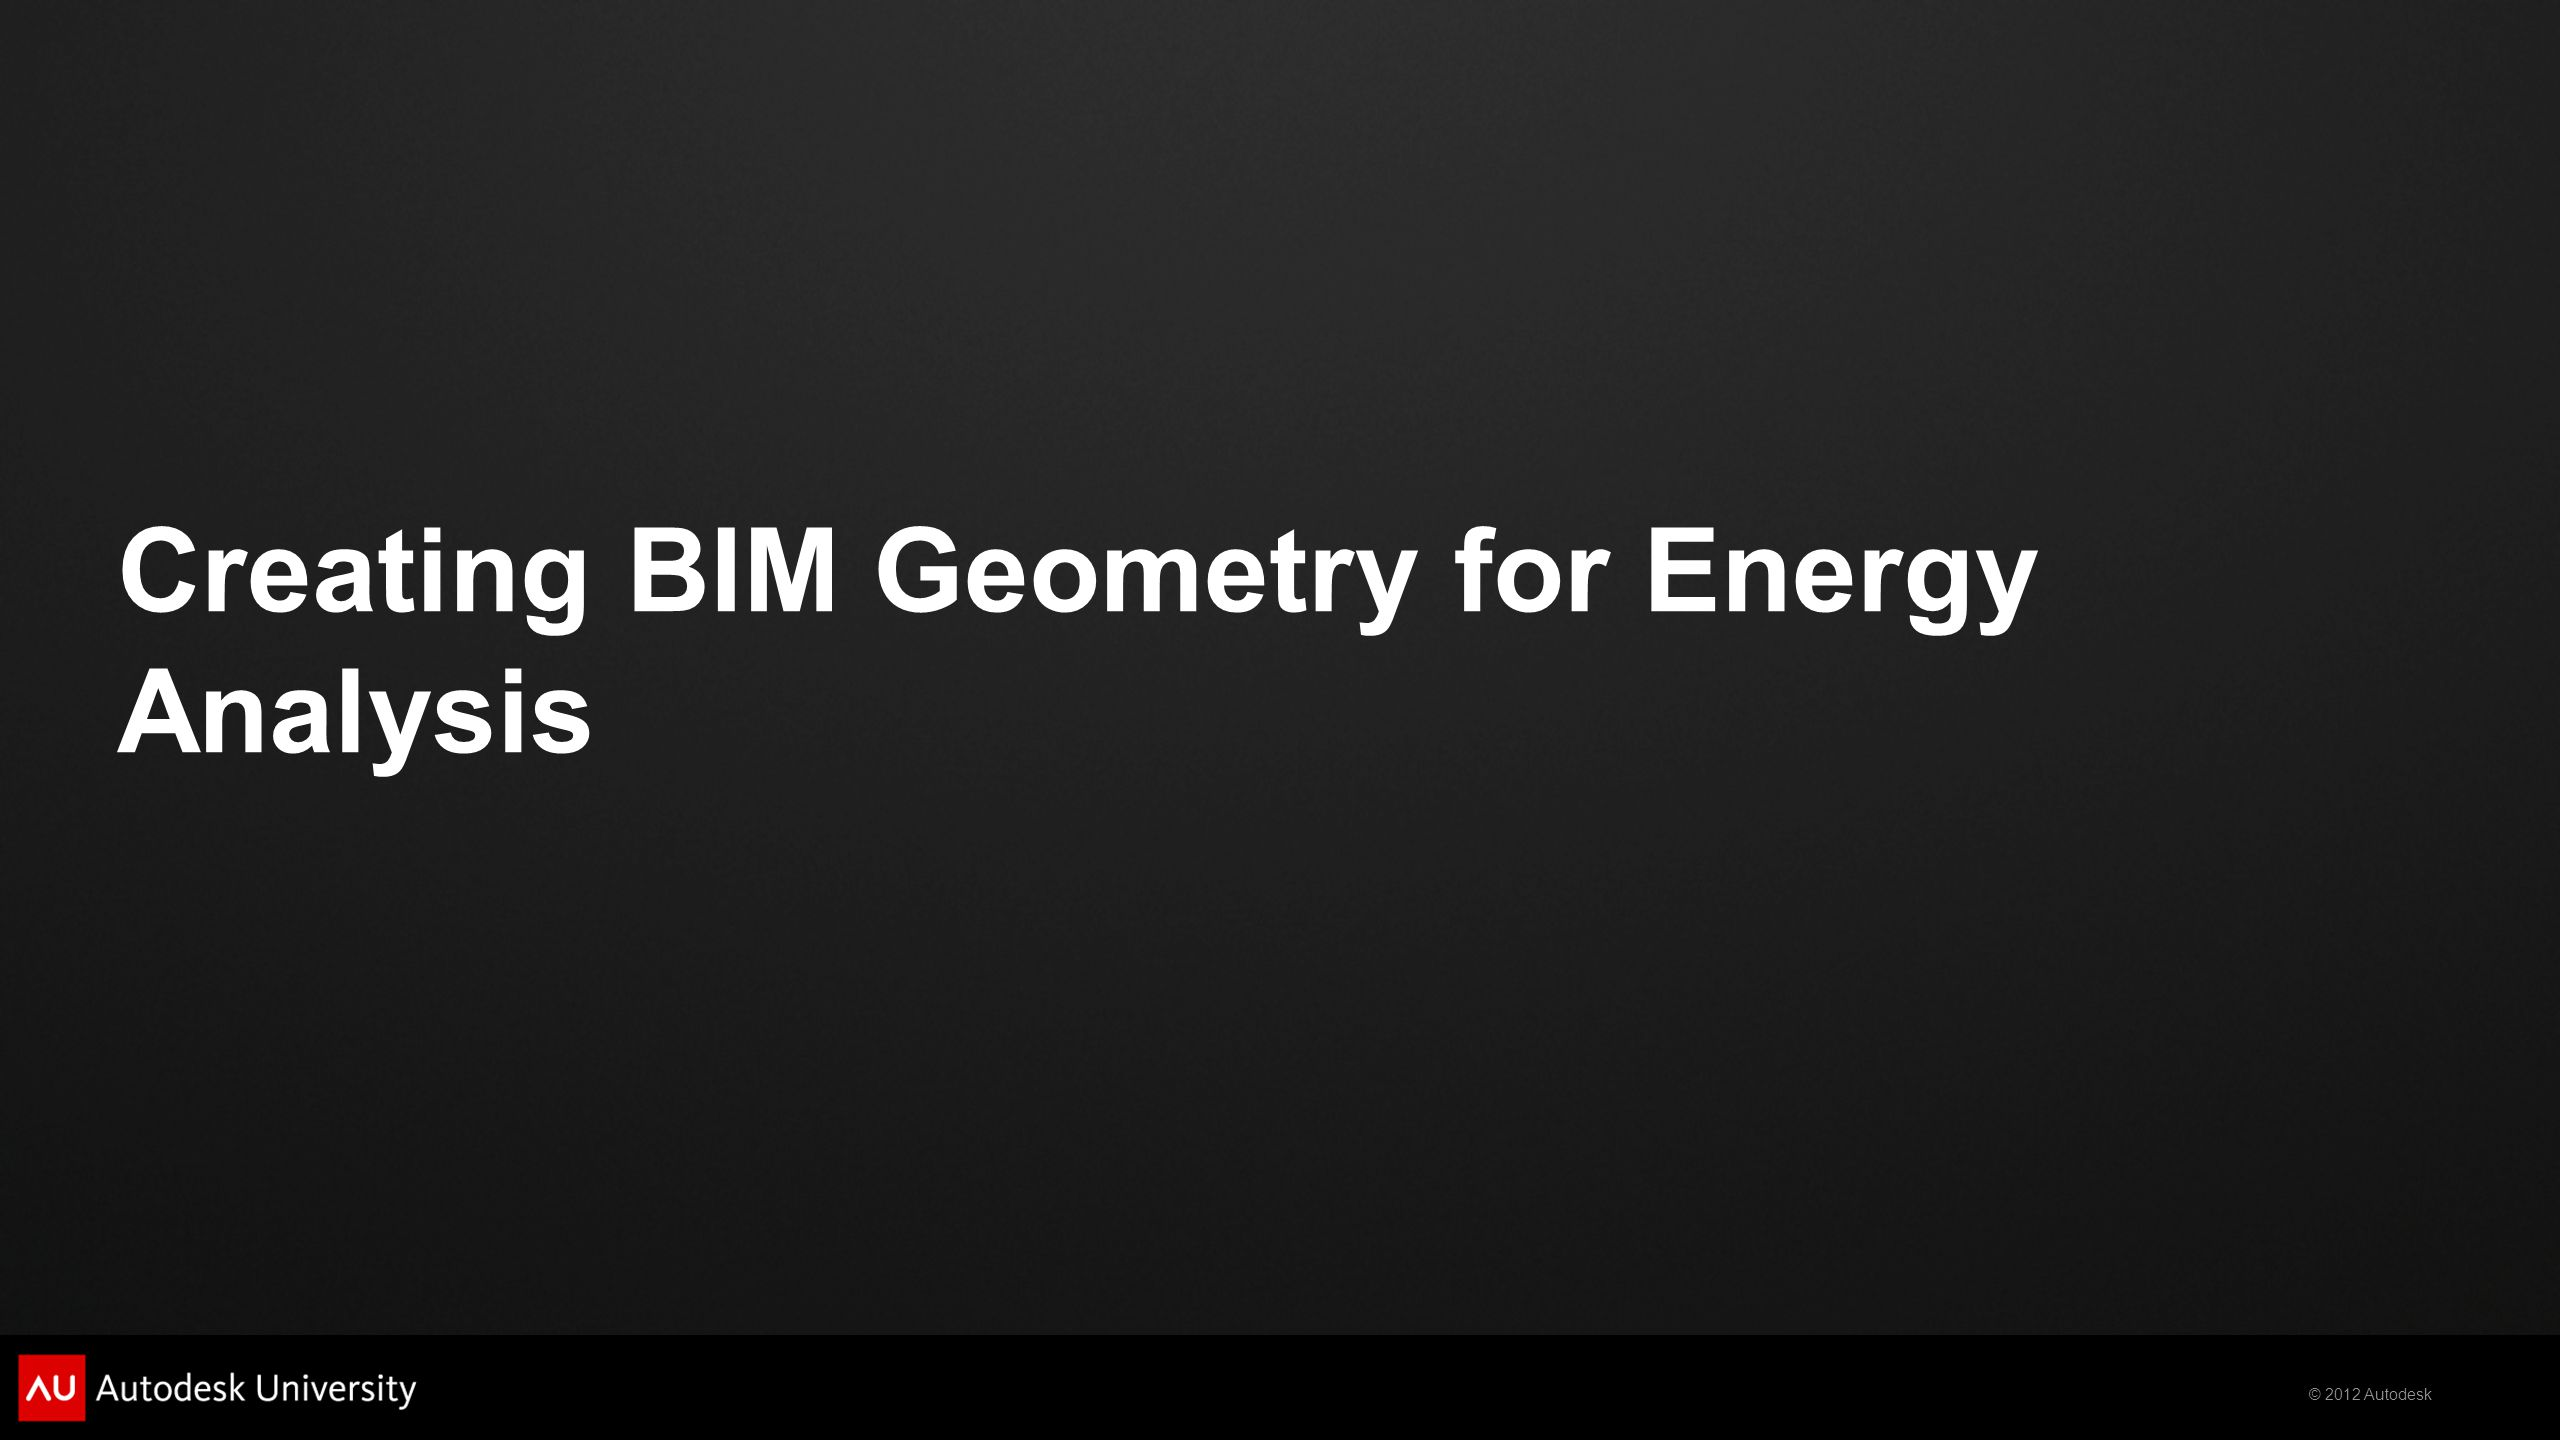 Creating BIM Geometry for Energy Analysis